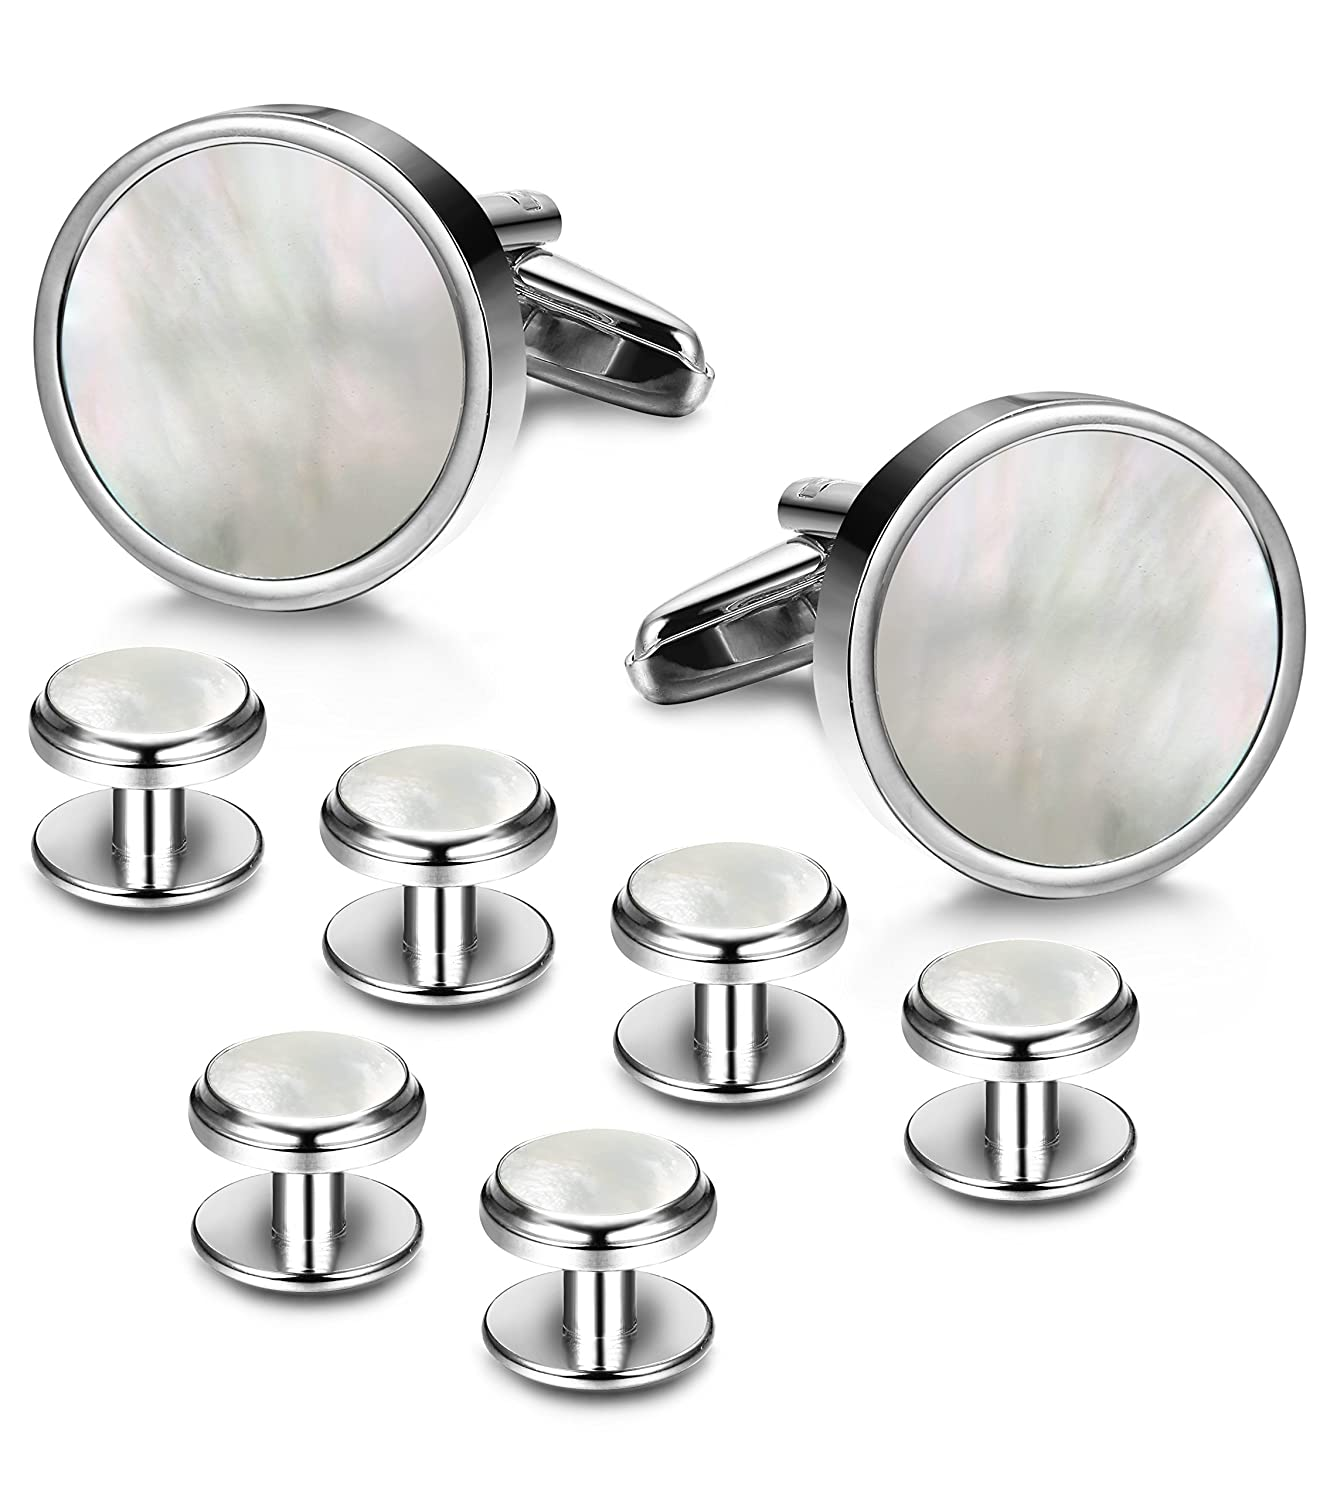 LOYALLOOK 8pcs Mens Silver Tone Mother of Pearl Shell Round Cufflinks and Shirt Stud Set Tuxedo Shirts Business Wedding TI082901